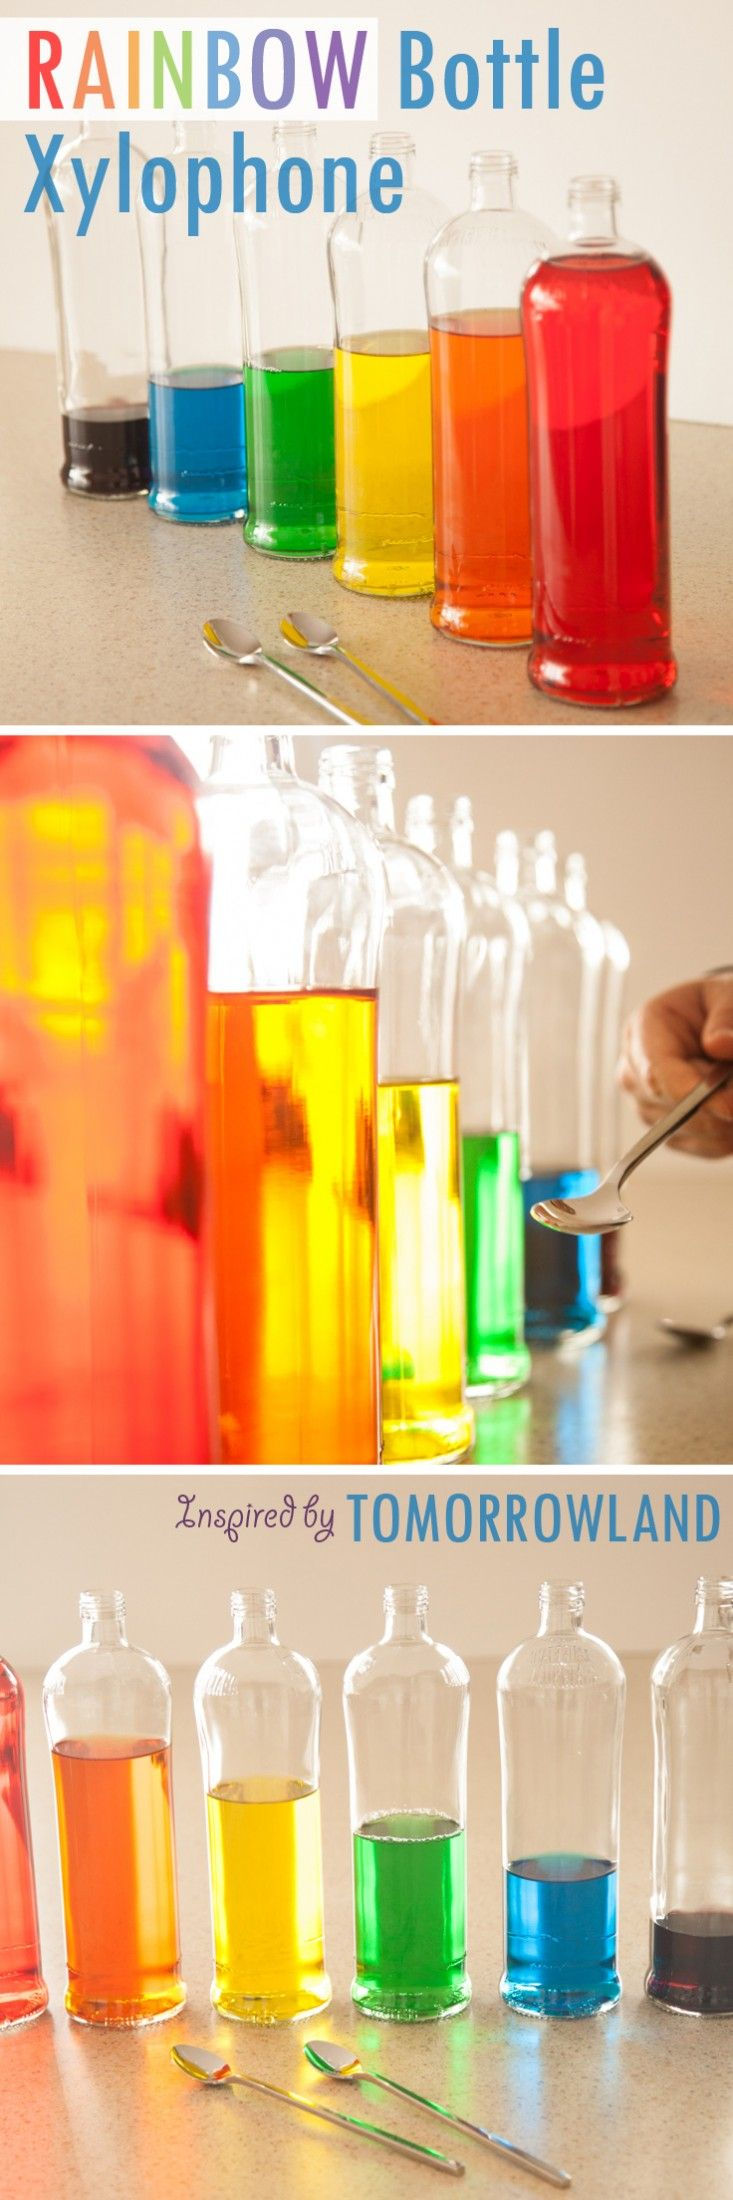 DIY Rainbow Glass Bottle Water Xylophone - fun for the whole family to play, especially young musicians and dreamers! Inspired by Disney's Tomorrowland film.